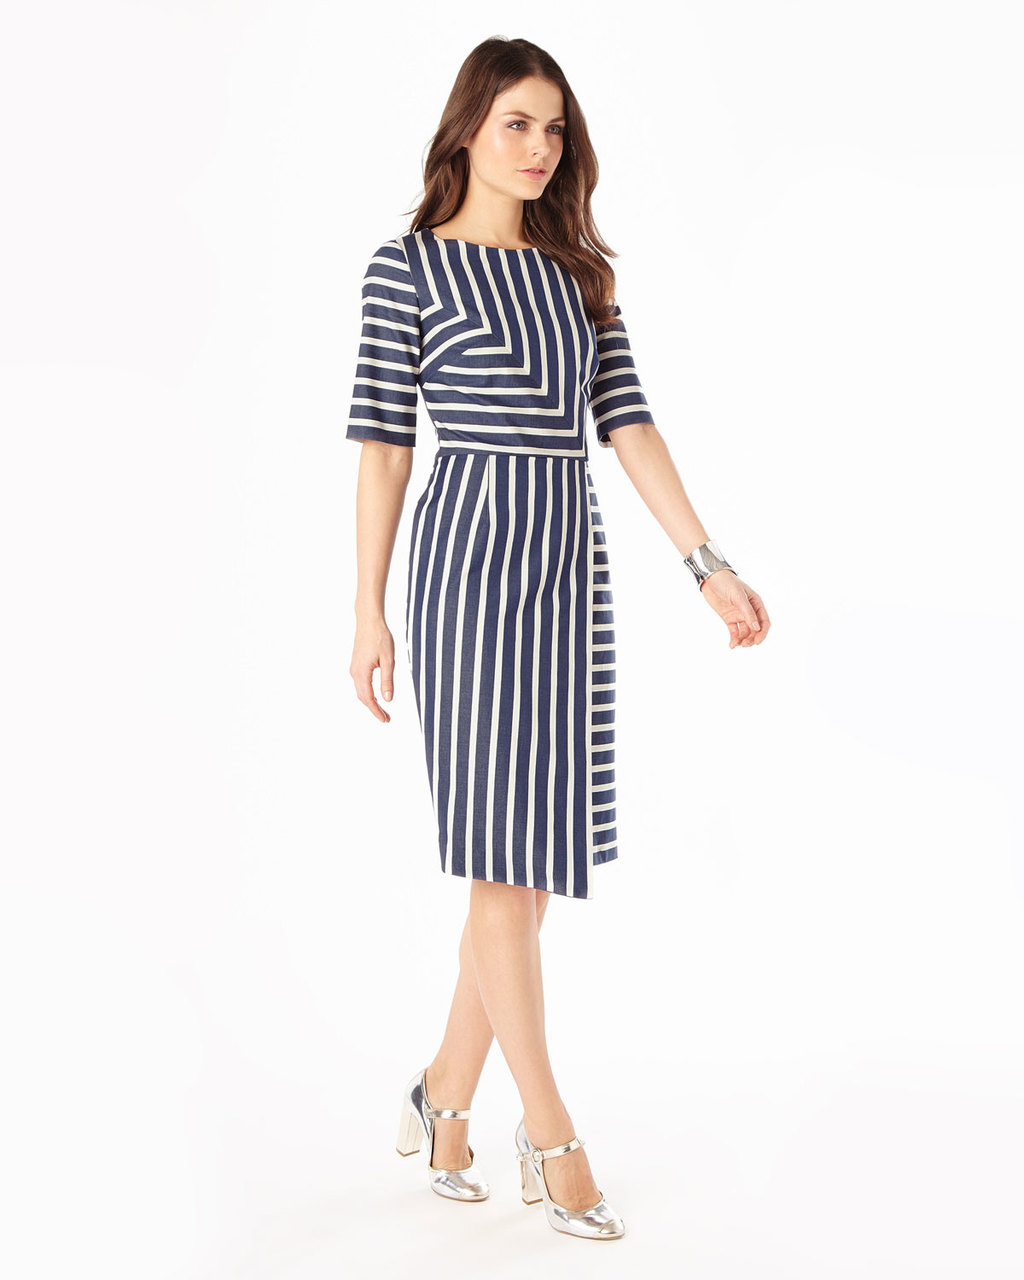 Alexandra Stripe Dress - style: shift; length: below the knee; pattern: striped; secondary colour: white; predominant colour: navy; occasions: evening; fit: body skimming; fibres: cotton - stretch; neckline: crew; sleeve length: half sleeve; sleeve style: standard; pattern type: fabric; texture group: jersey - stretchy/drapey; multicoloured: multicoloured; season: s/s 2016; wardrobe: event